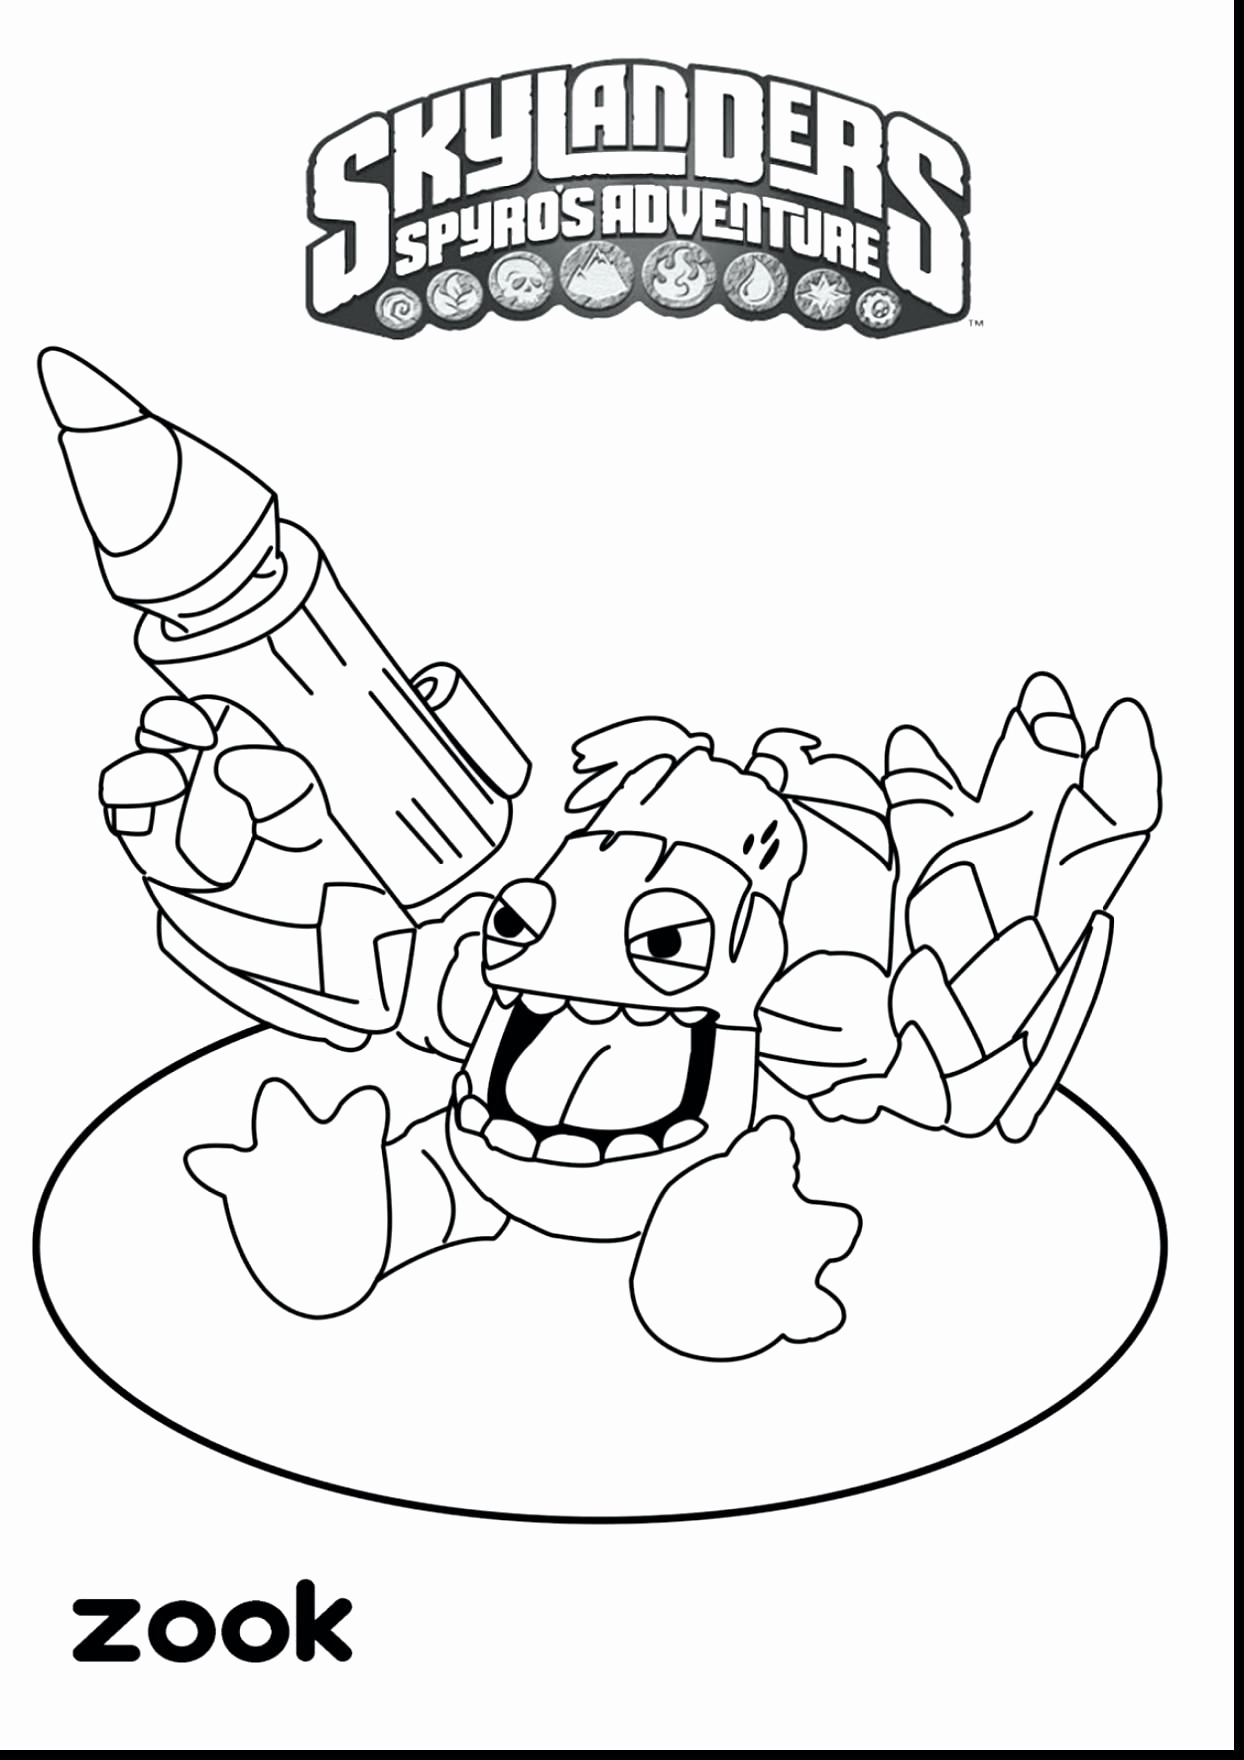 First Day Of Preschool Coloring Pages - Coloring Printables